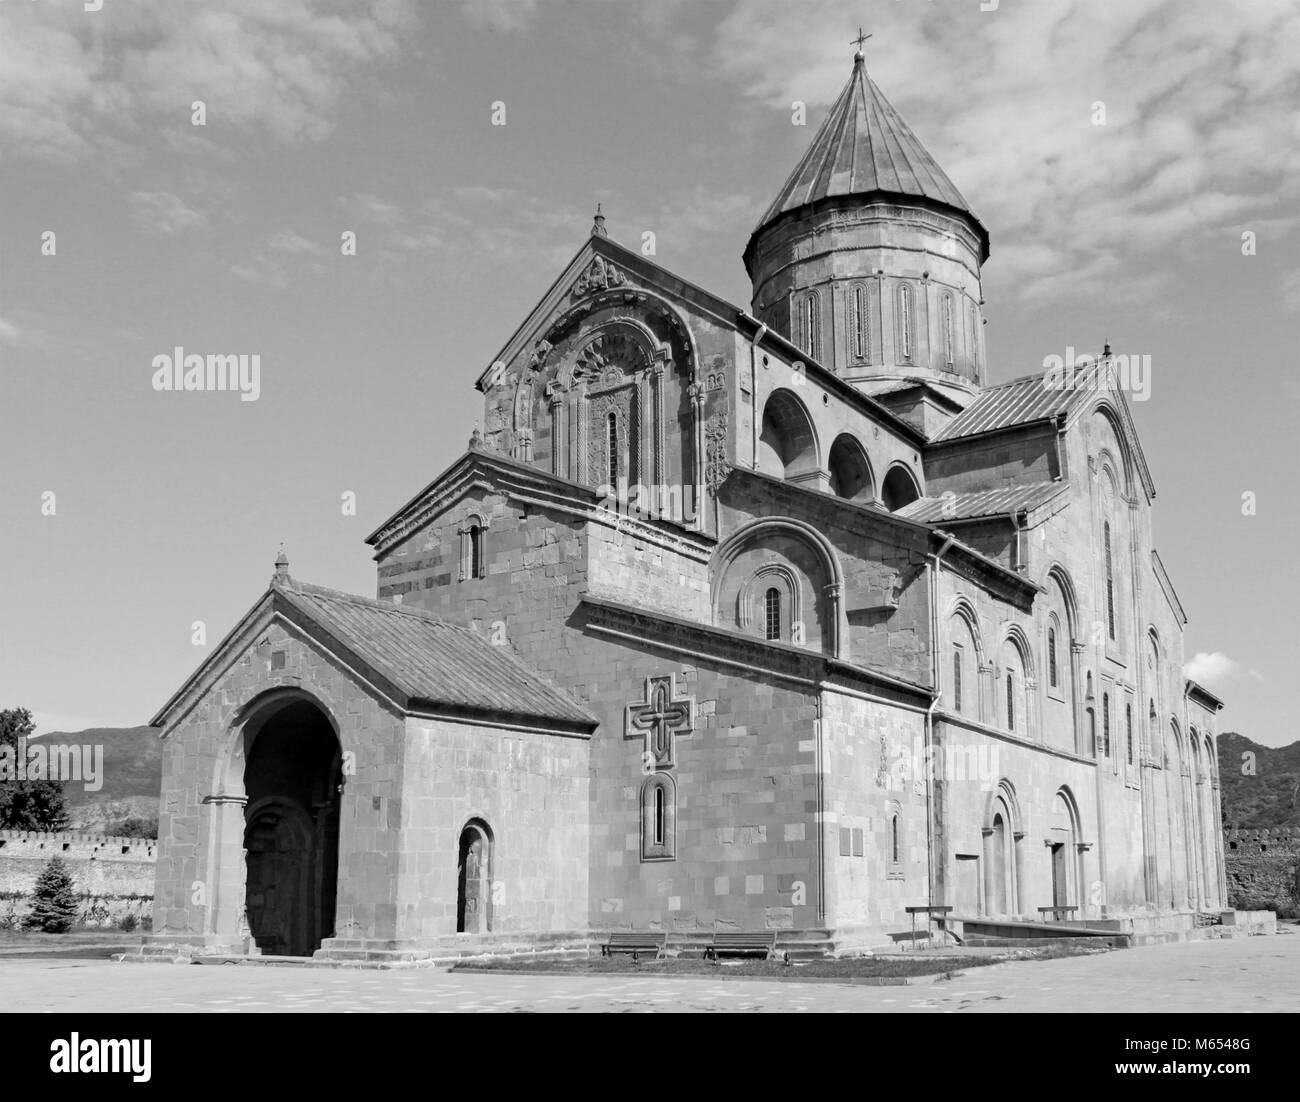 Svetitskhoveli Cathedral in Mtskheta, Georgia in black and white - Stock Image